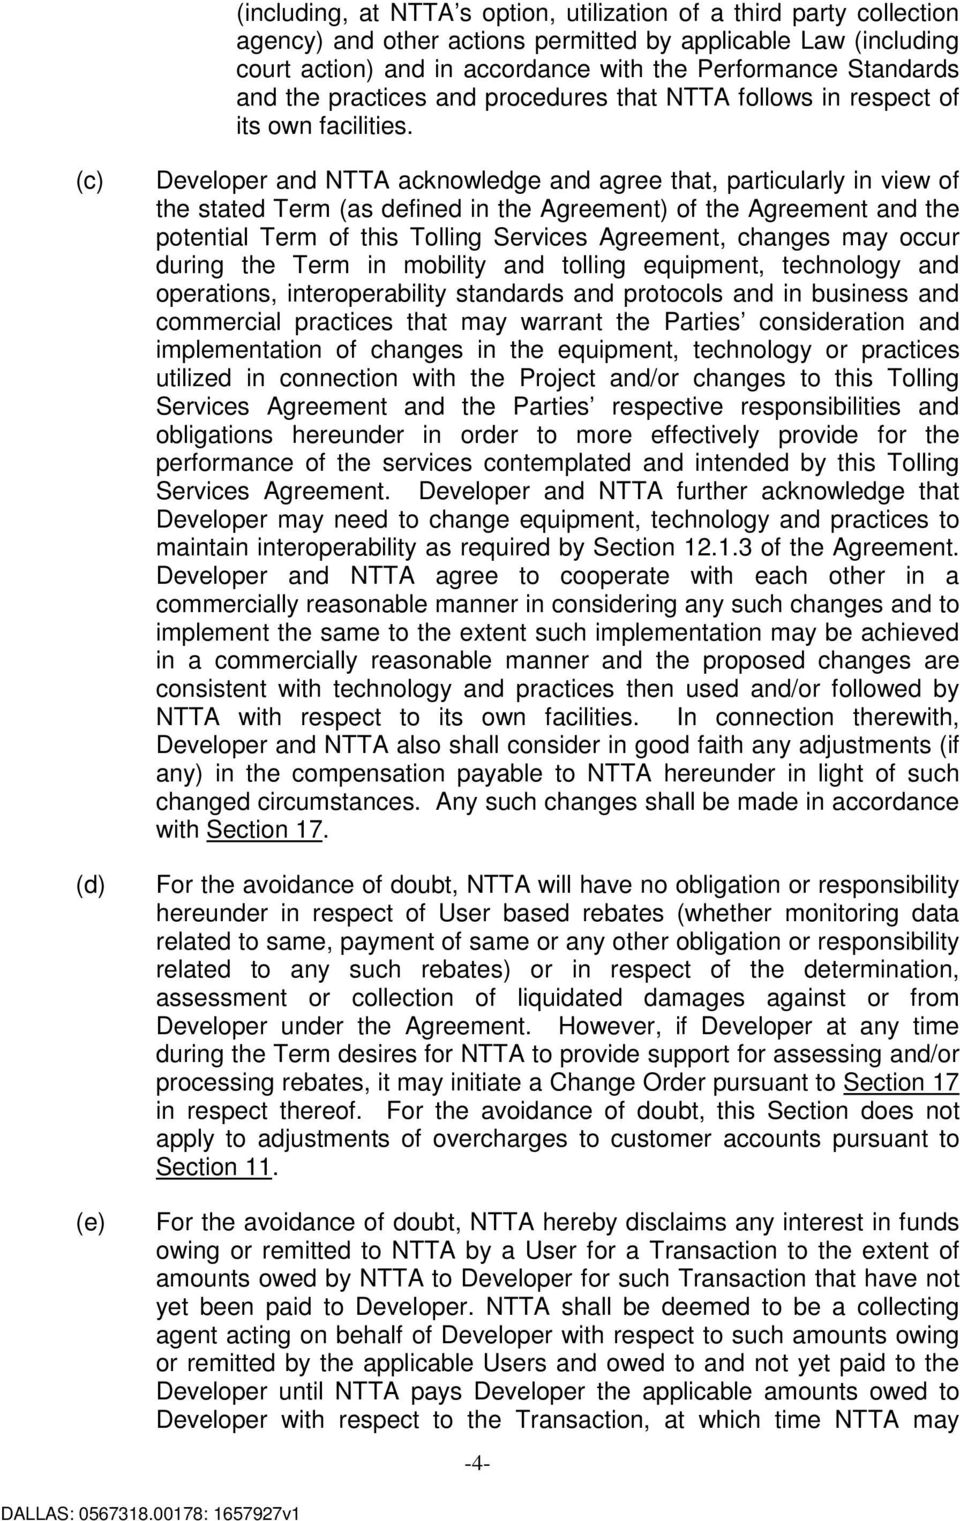 (c) (d) (e) Developer and NTTA acknowledge and agree that, particularly in view of the stated Term (as defined in the Agreement) of the Agreement and the potential Term of this Tolling Services